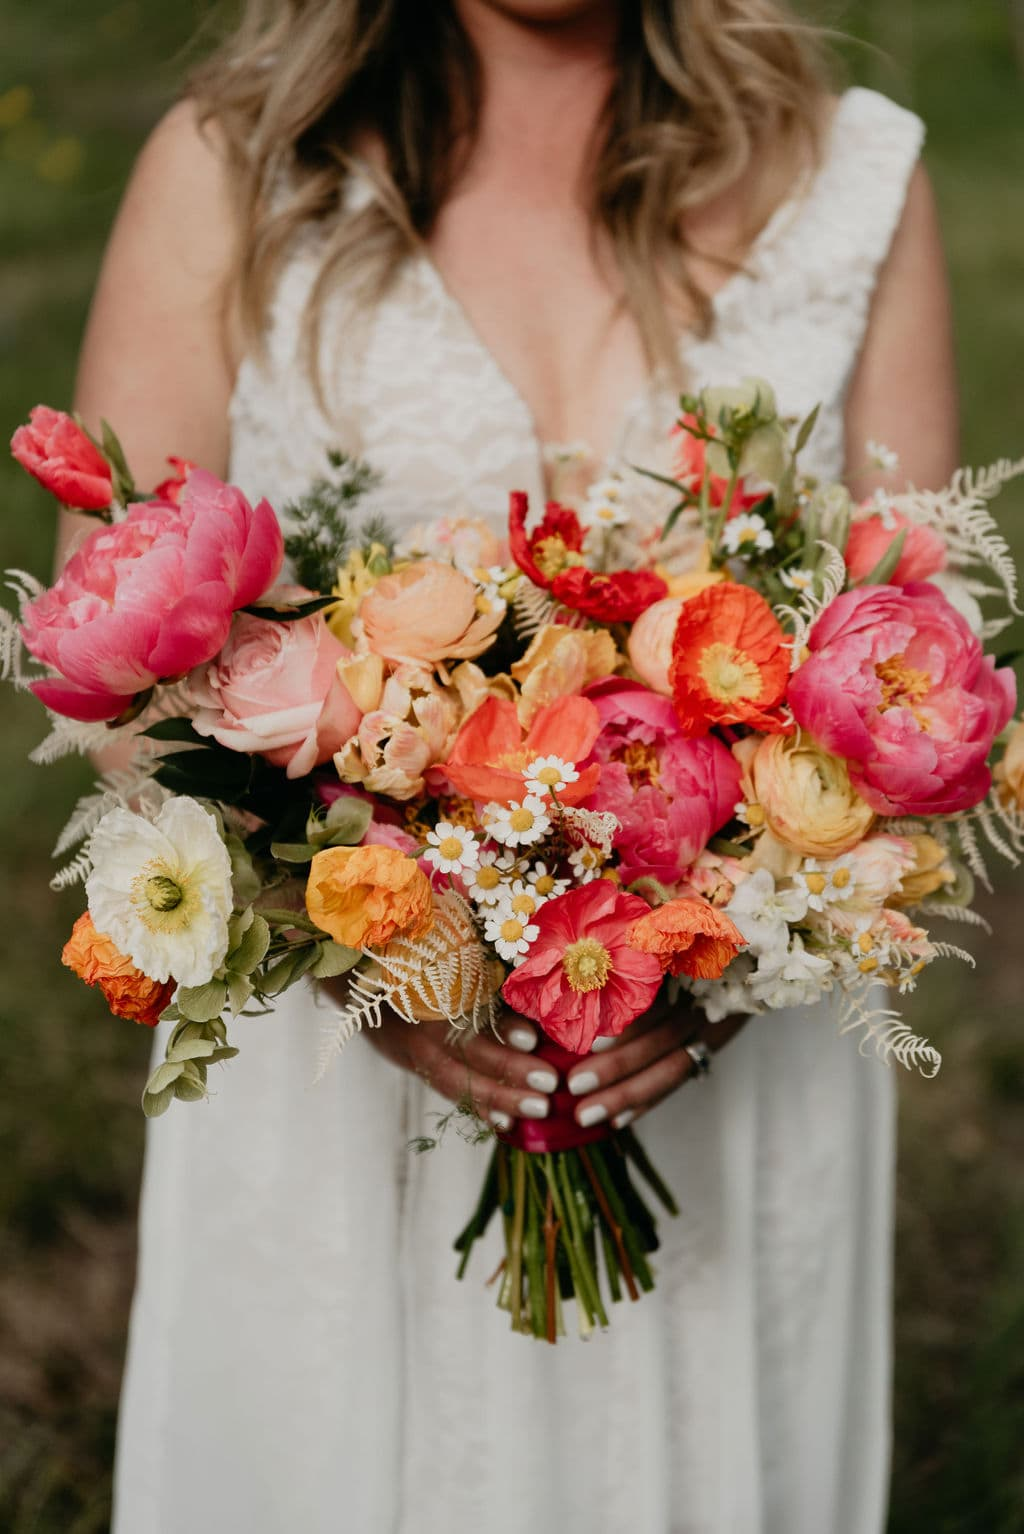 Painted Primrose wedding florals with corals and pinks and yellows